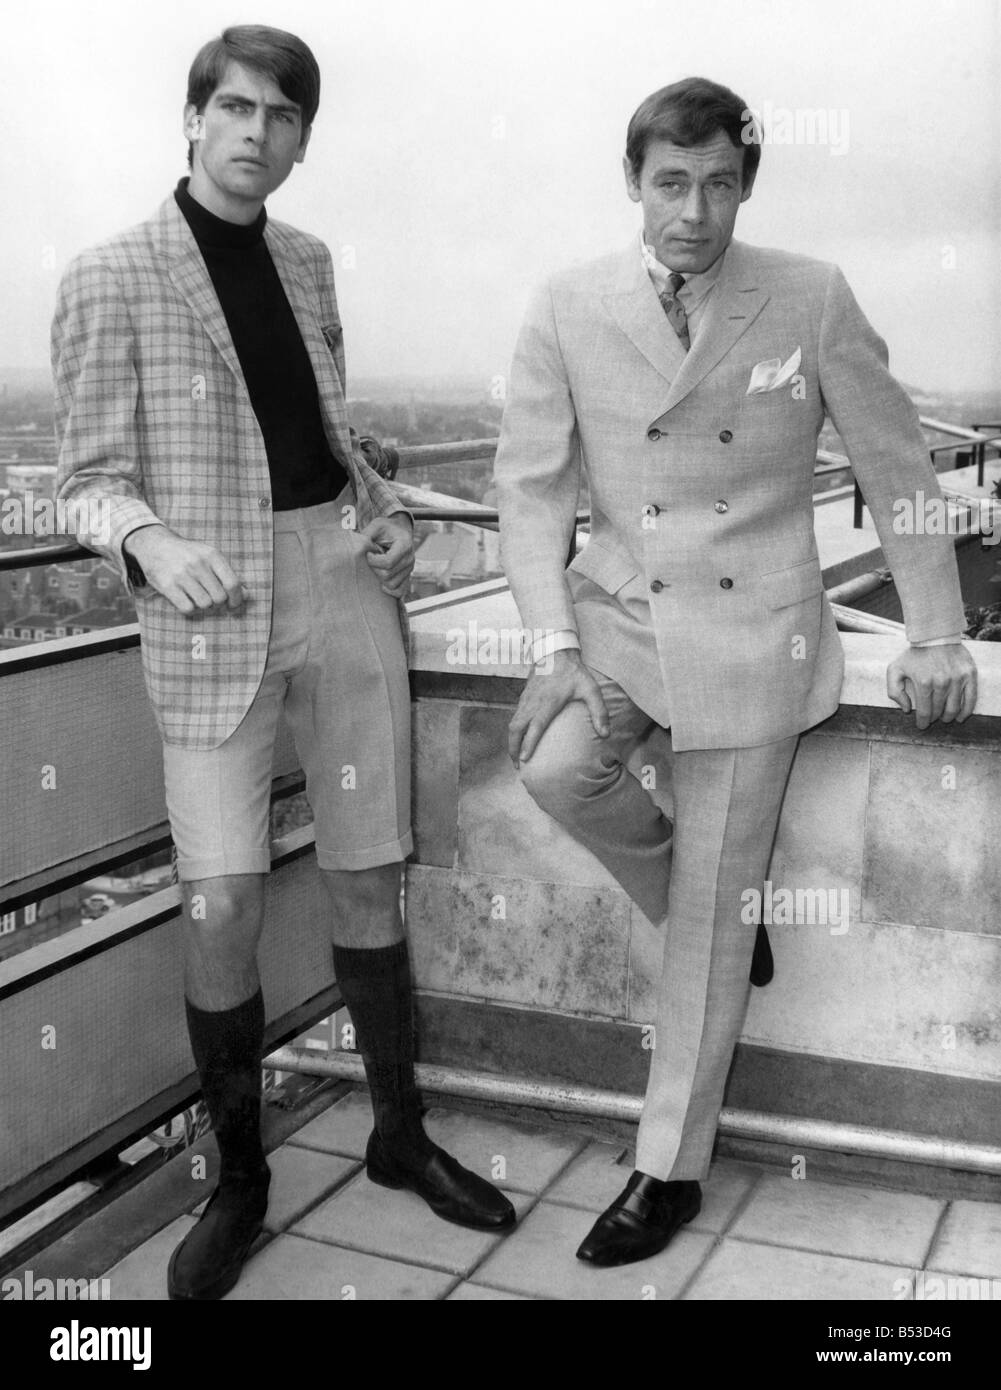 1960 S Mens Fashion High Resolution Stock Photography And Images Alamy